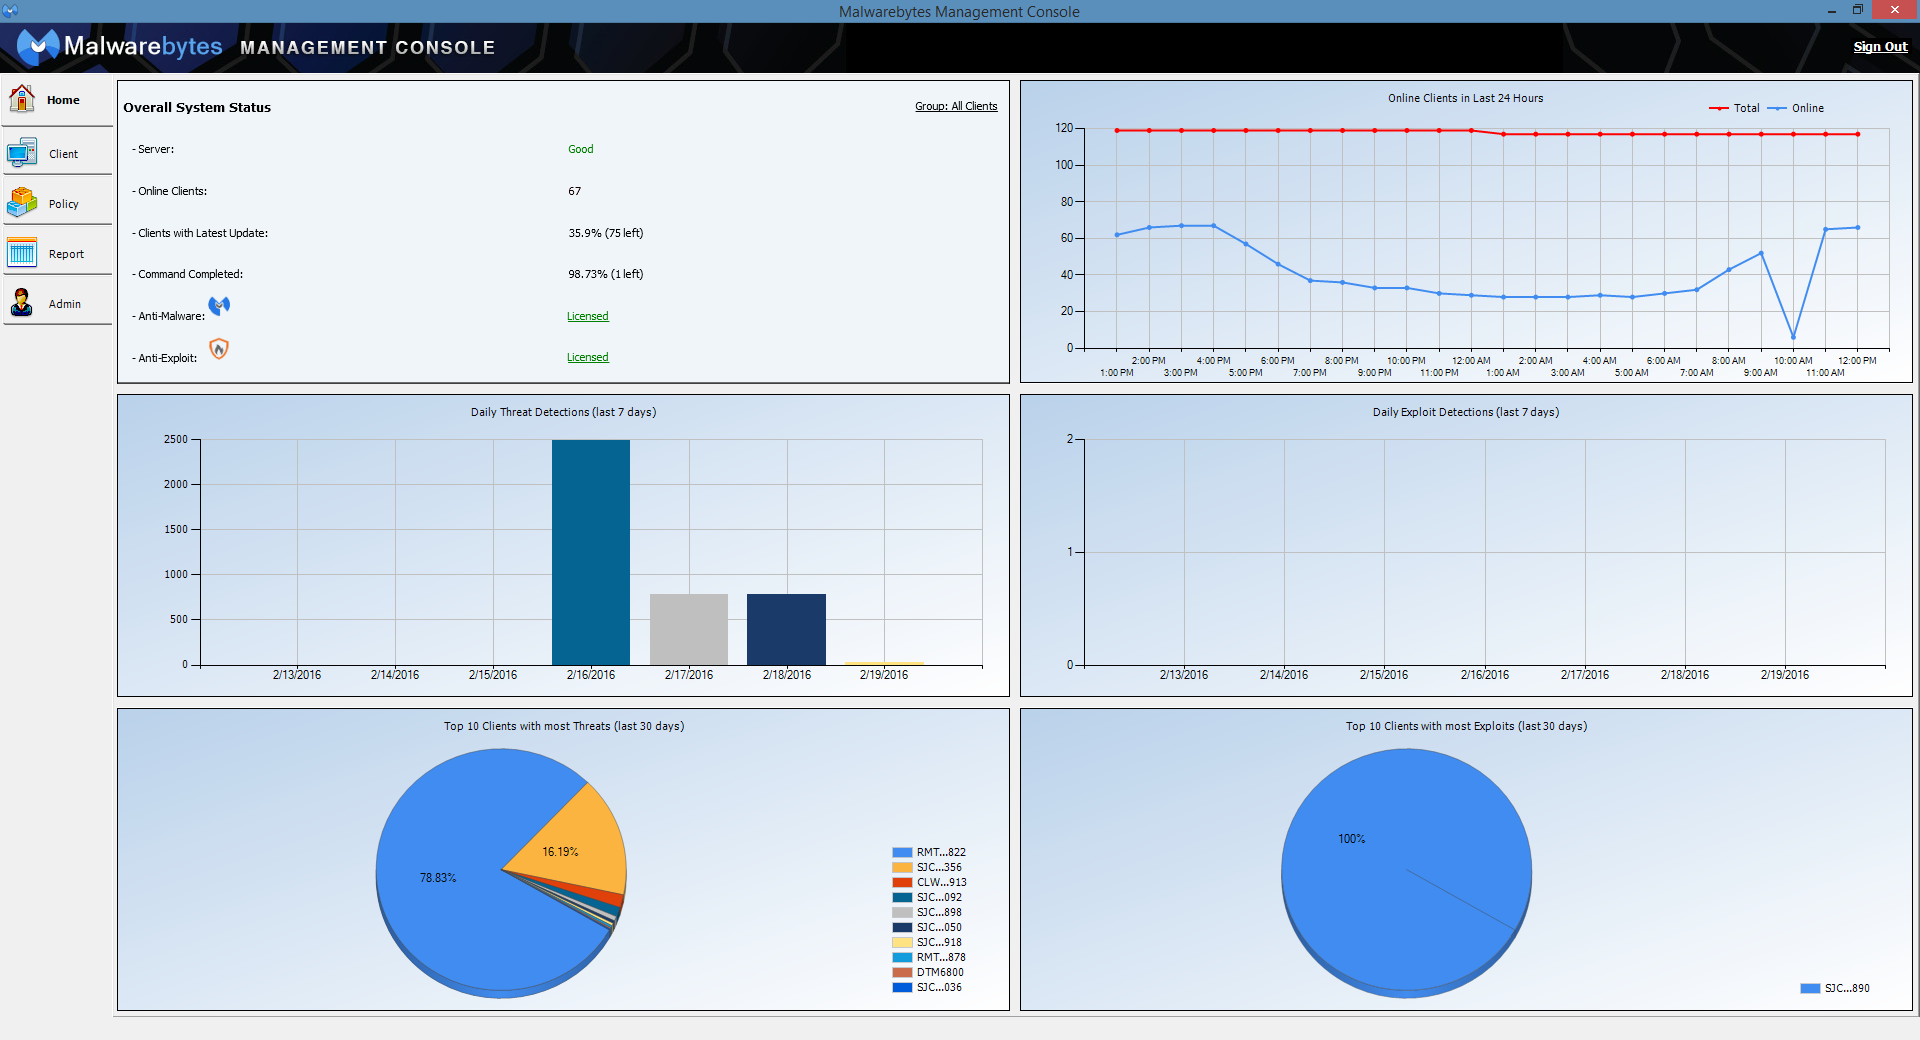 Malwarebytes Demo - Management Console Dashboard